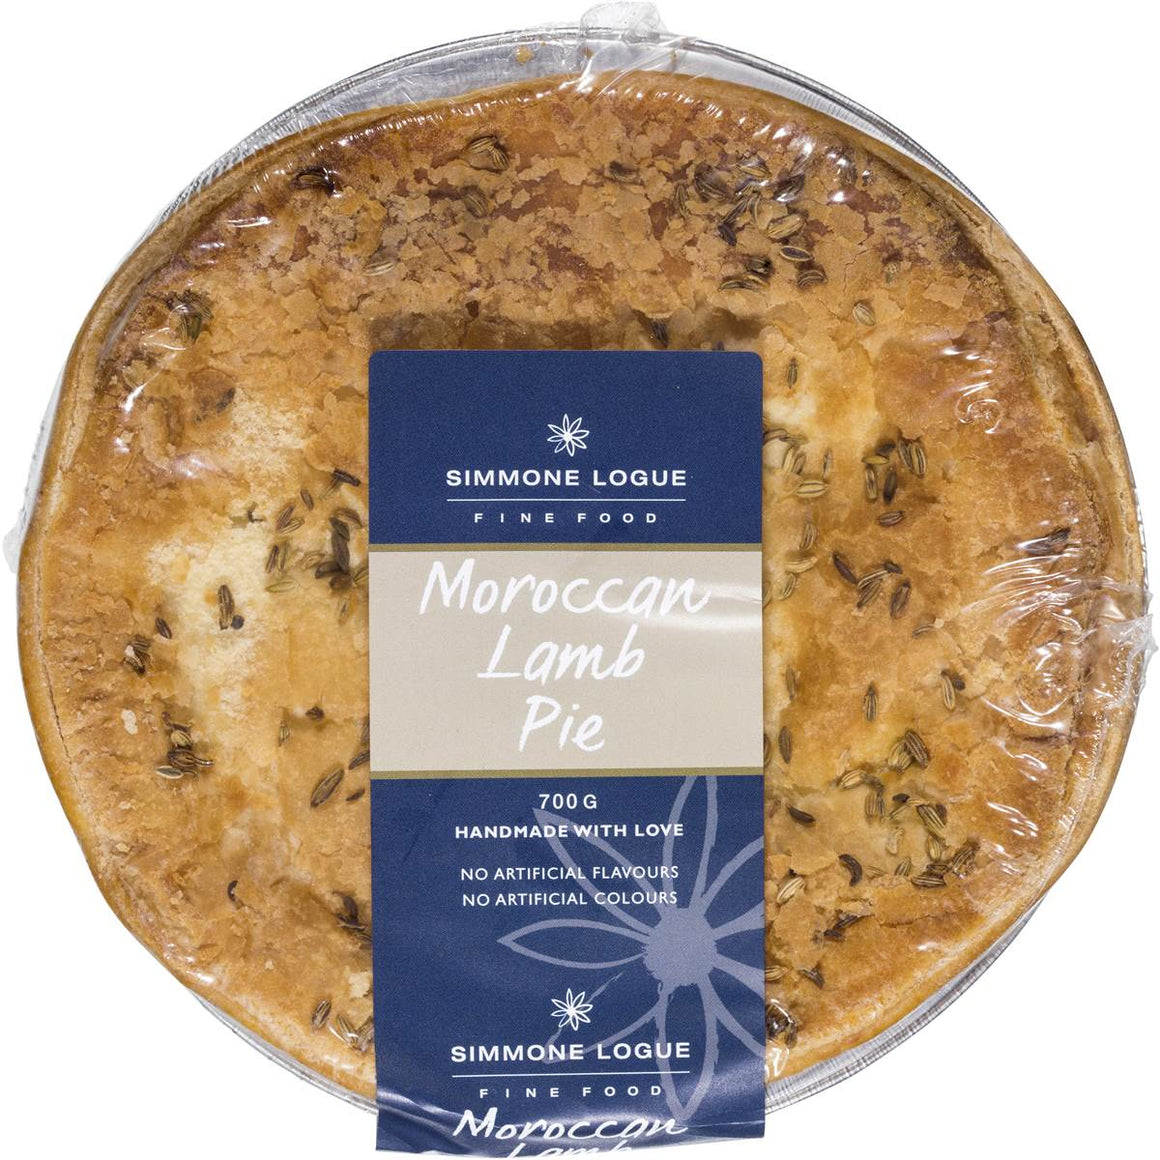 Simmone Logue - Moroccan Lamb Pie 700g